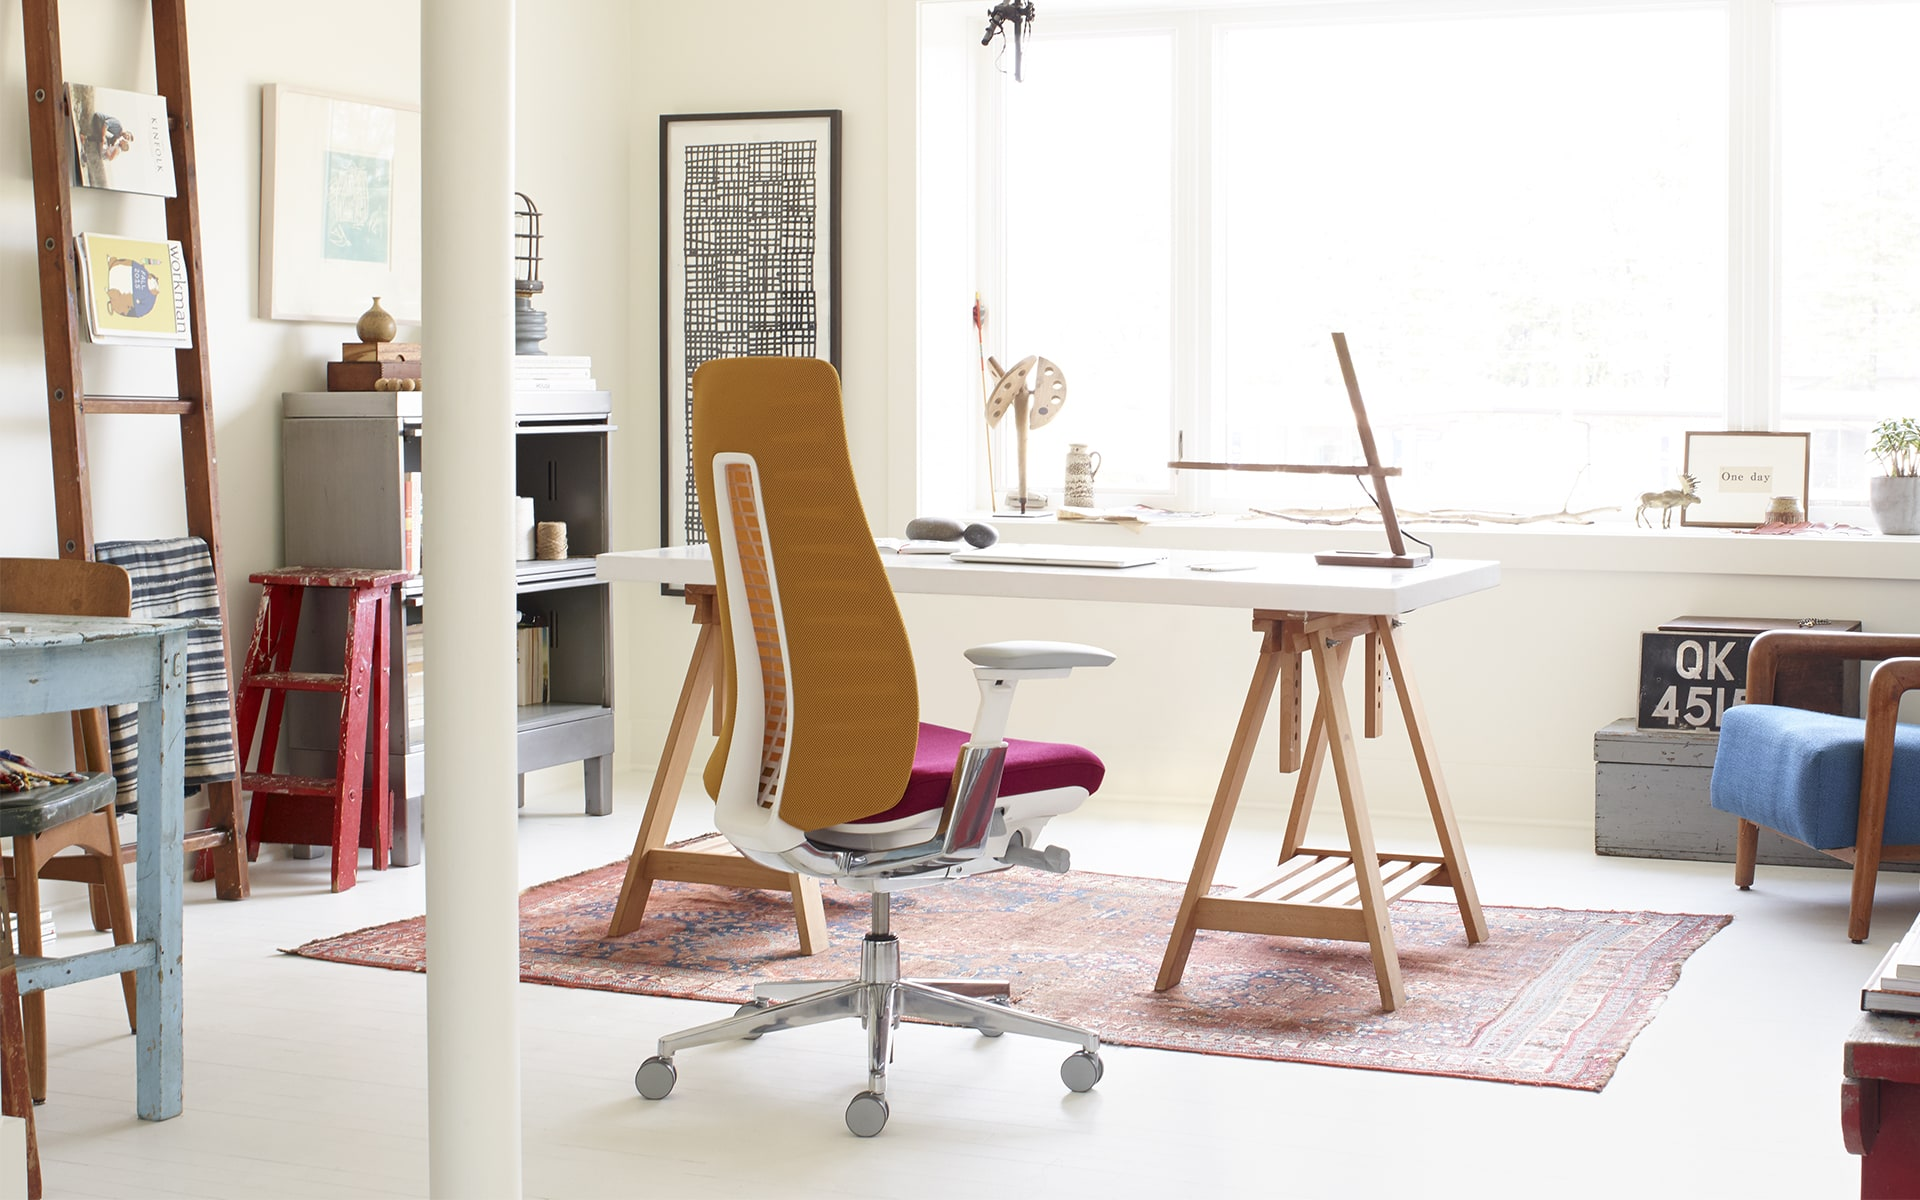 Haworth Fern office chair by ITO Design with brown backrest and hot pink upholstery in bright home office